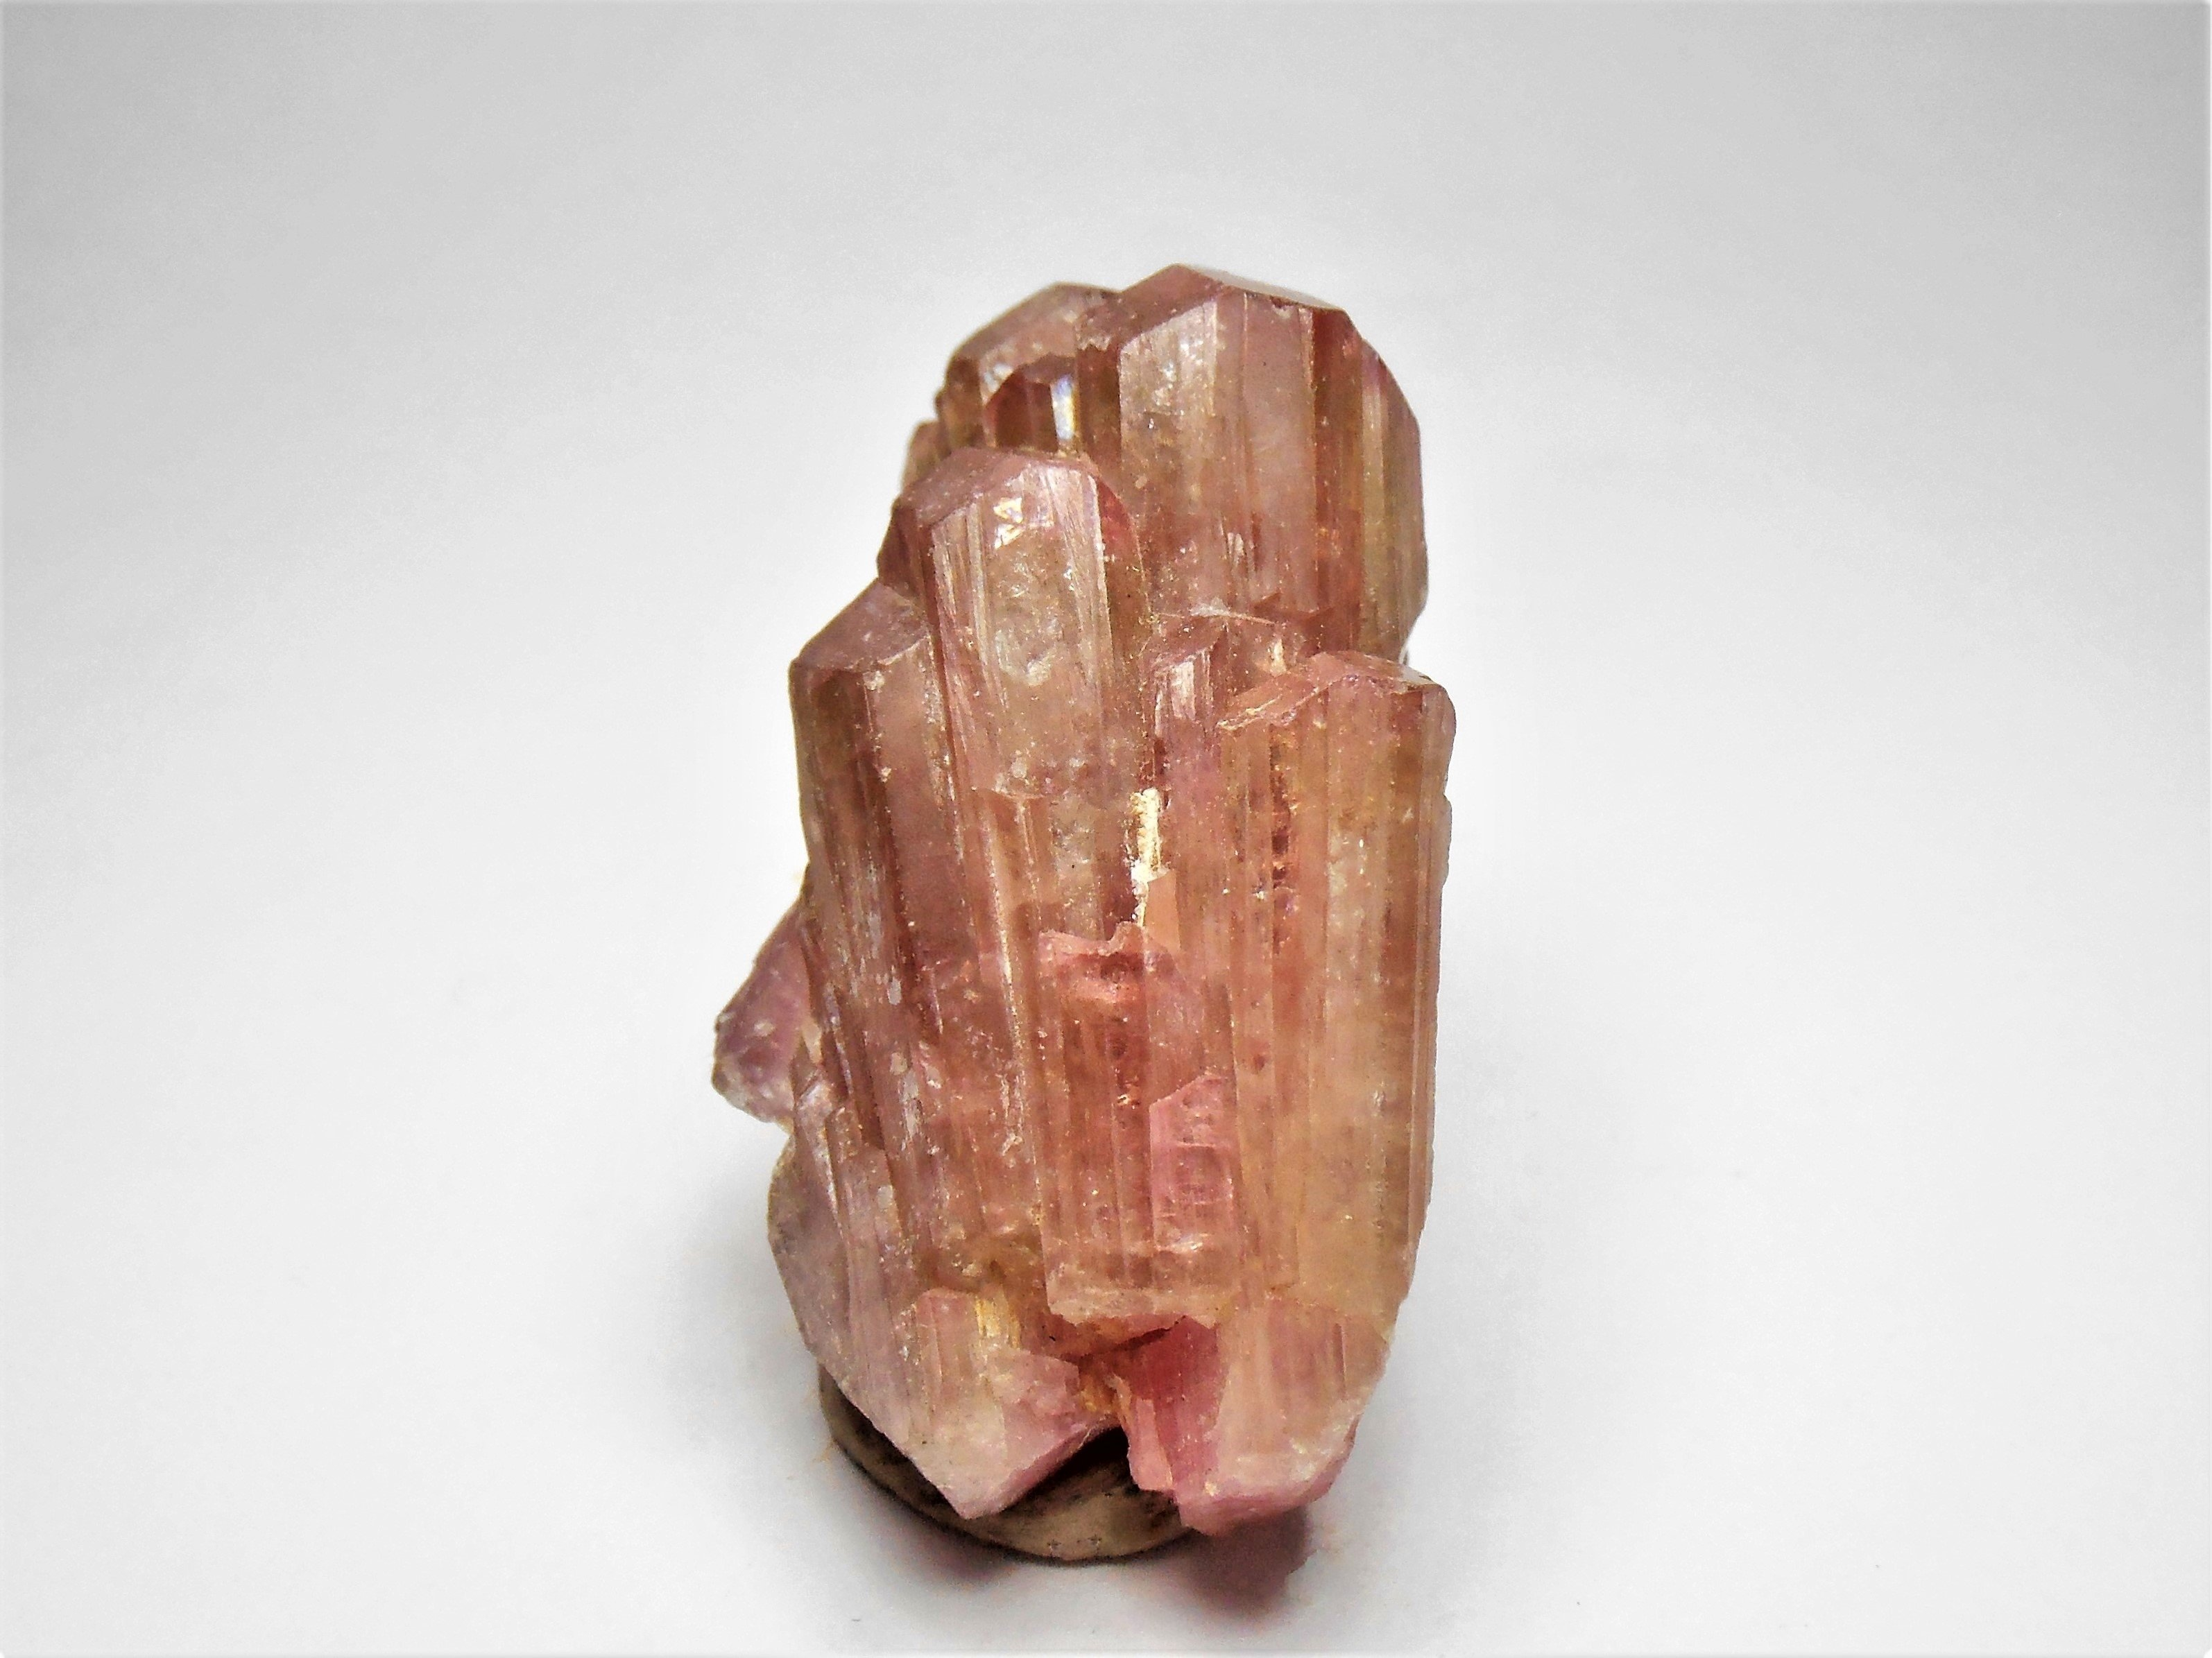 Elbaite Tourmaline from the Luc Yen Province